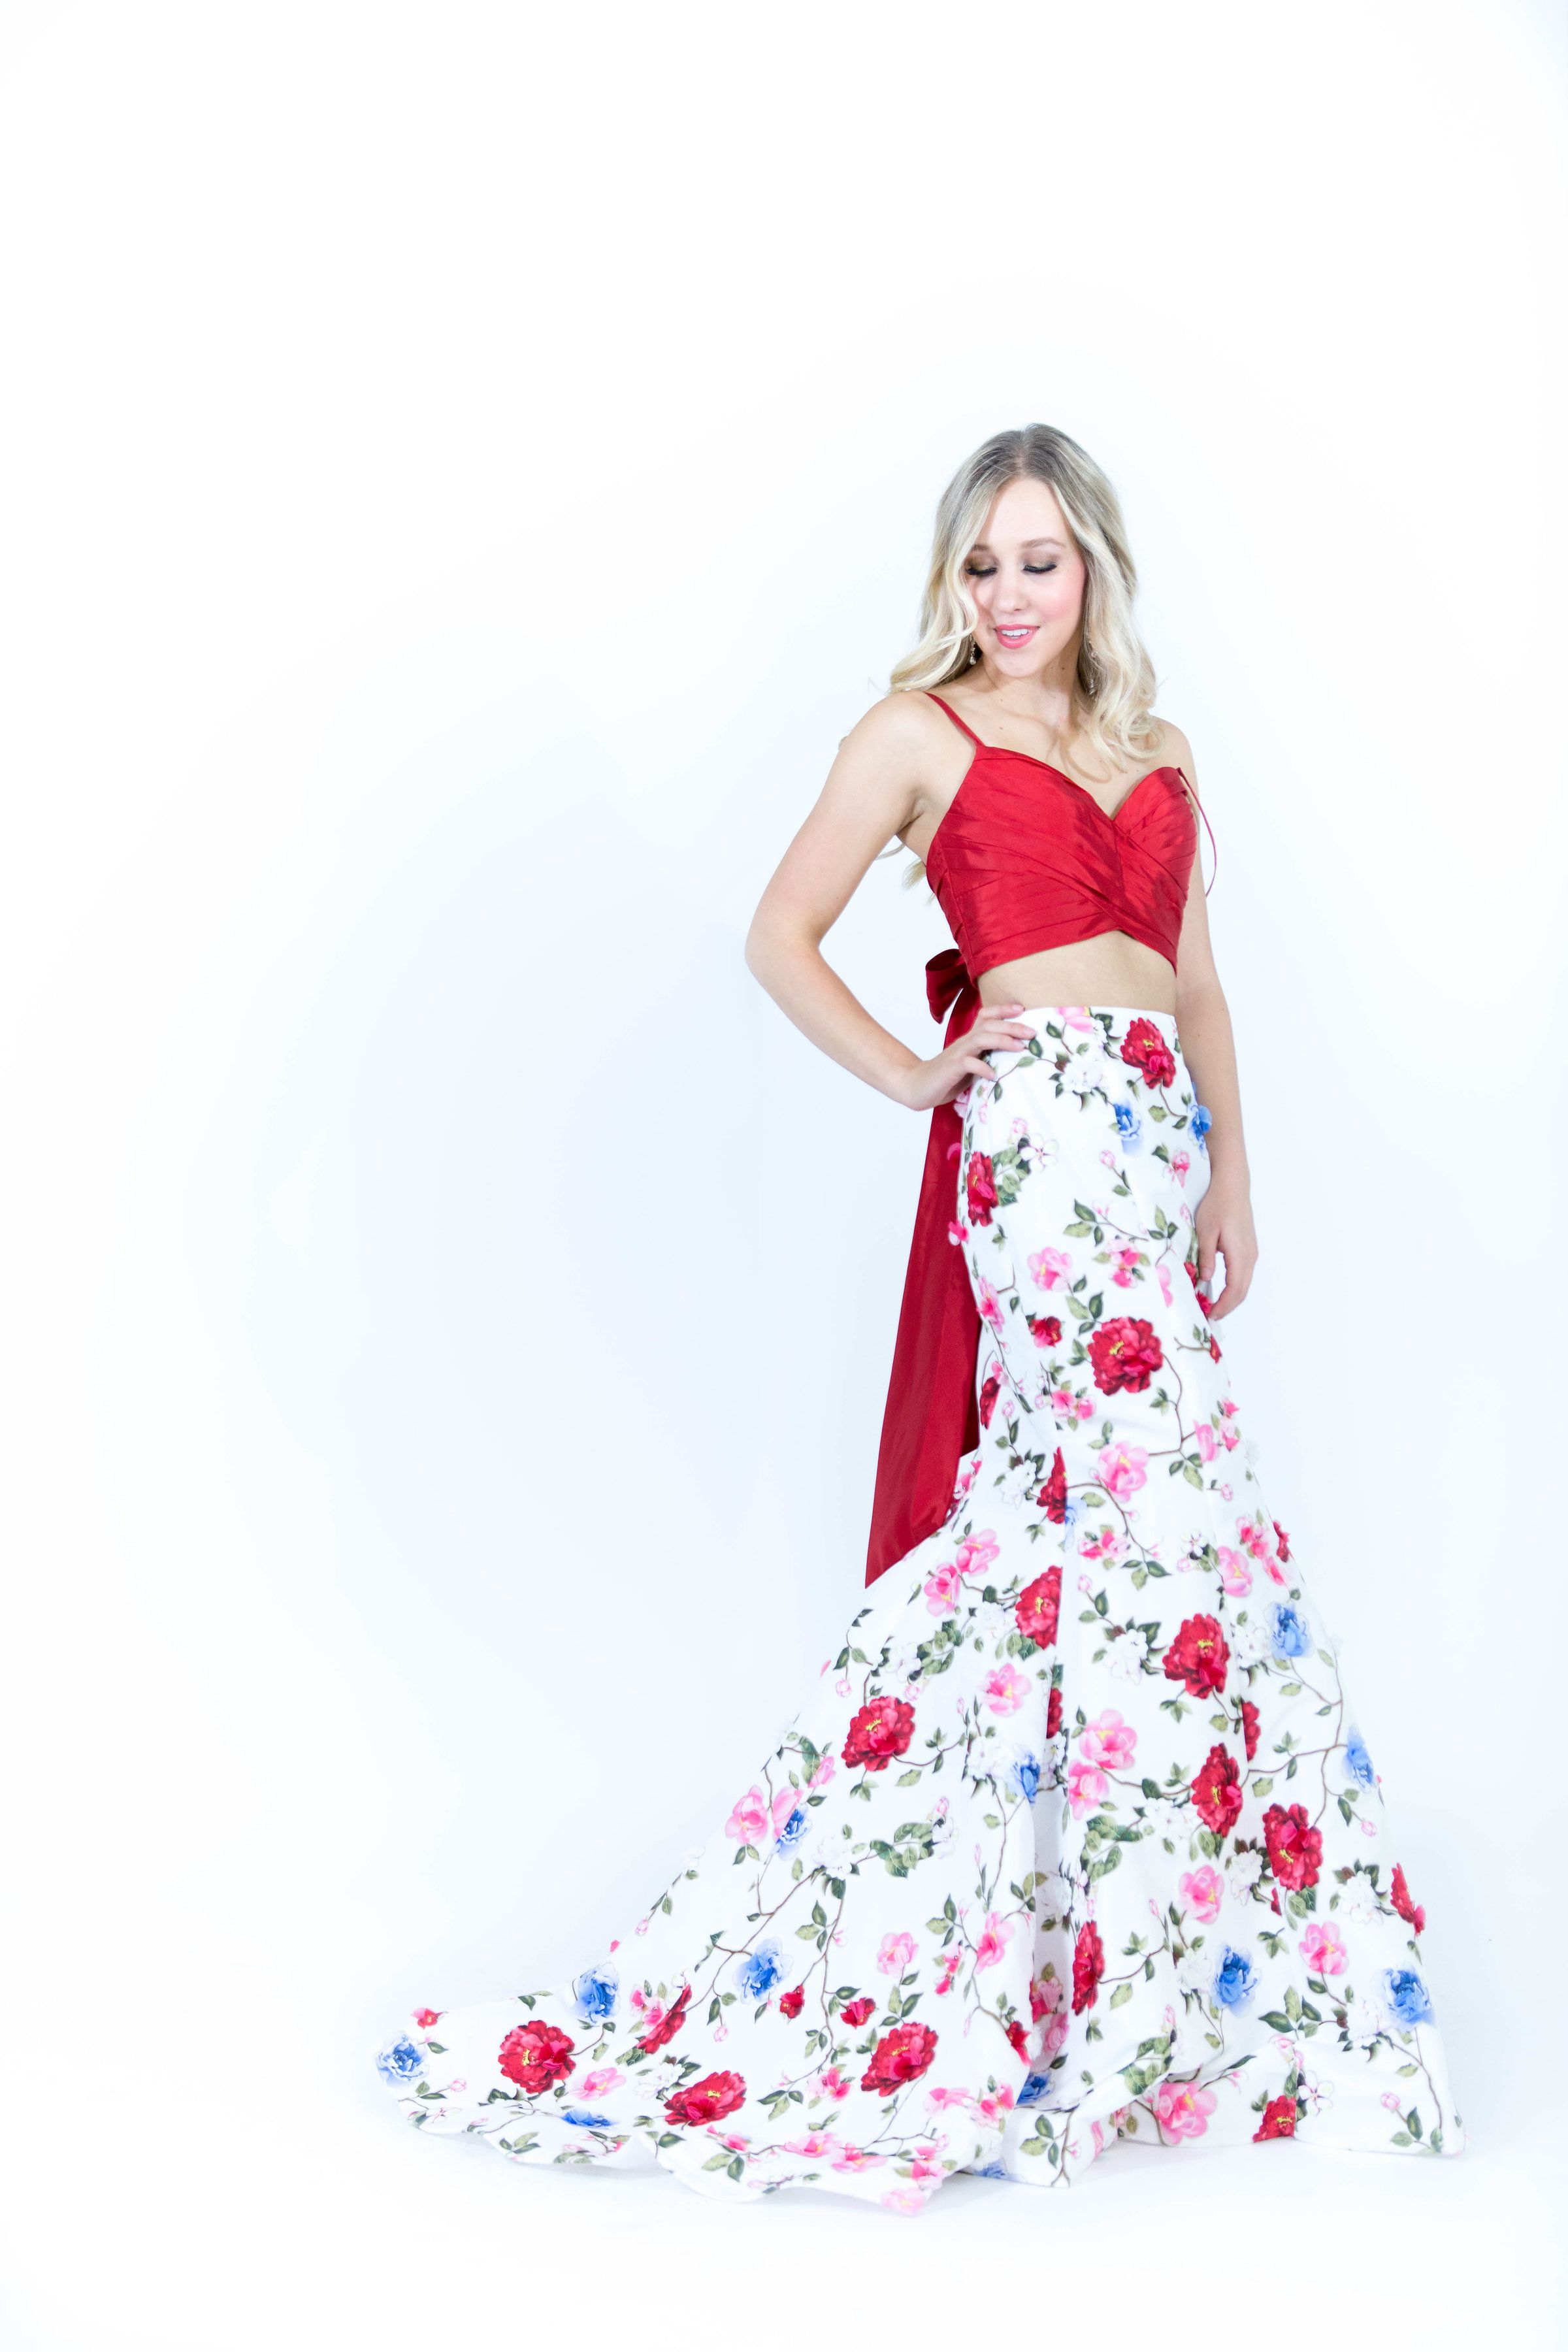 f96e7c04b26 Sherri Hill 2 Piece Red and White Multi colored floral print with 3D flowers  appliqué Ypsilon Dresses in SLC Utah Prom Pageant Evening Wear School Dance  ...